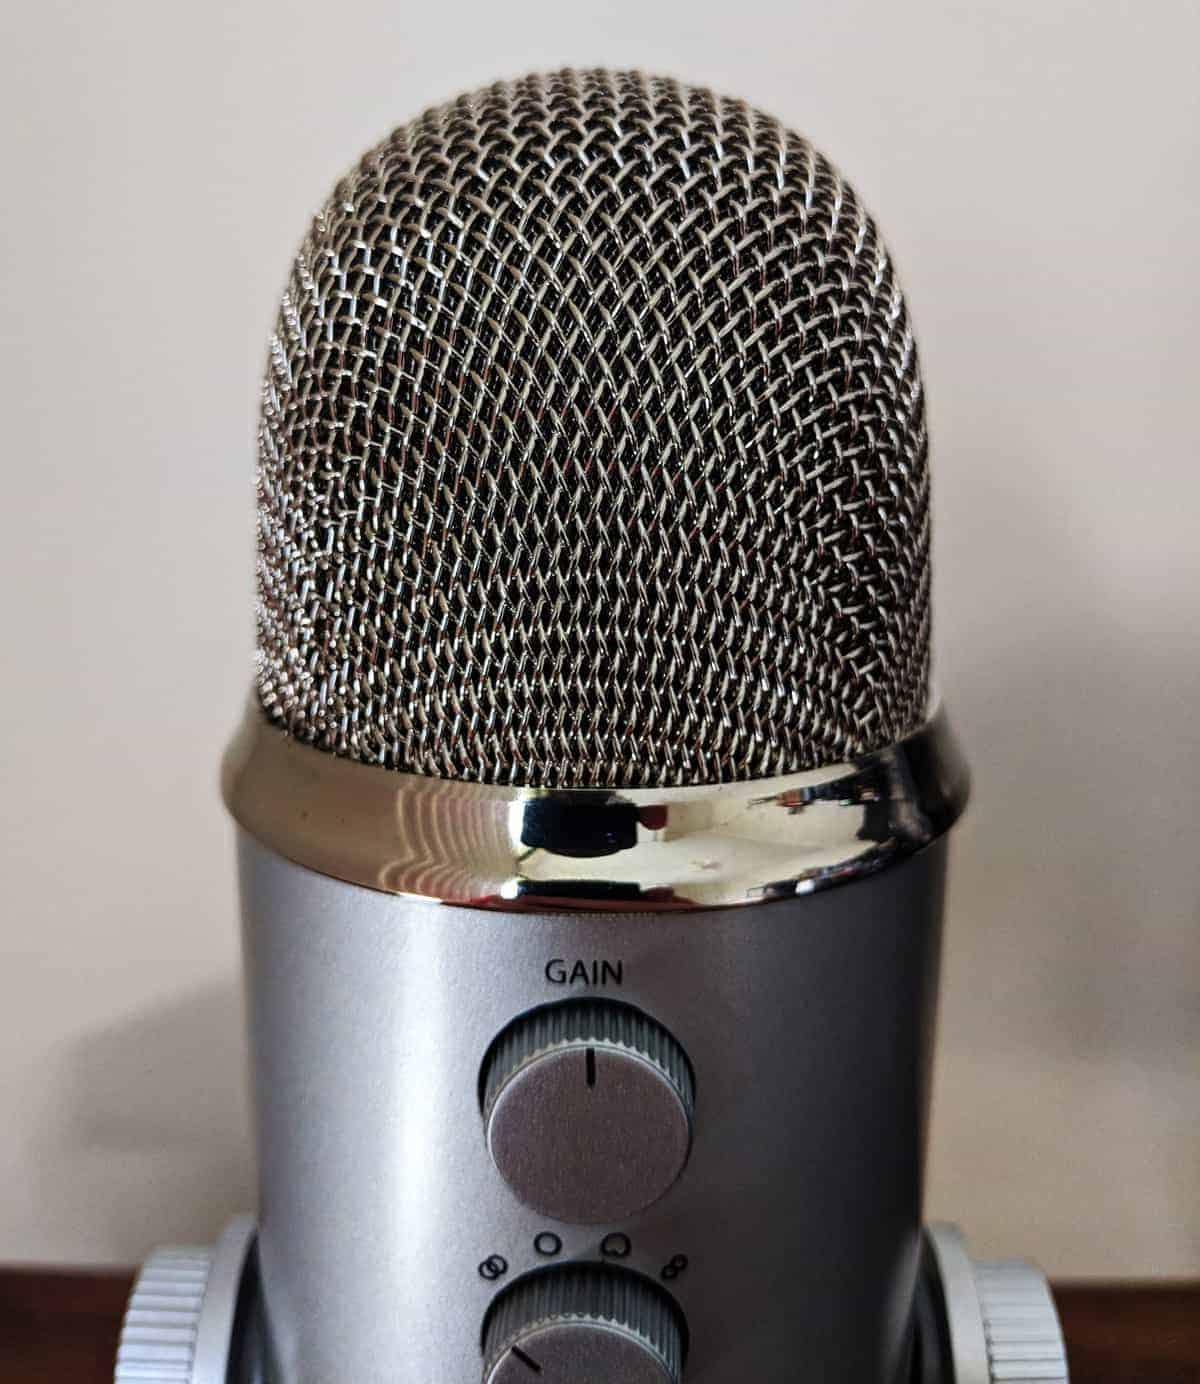 Blue-Yeti-Photos-14 Blue Yeti Microphone Review